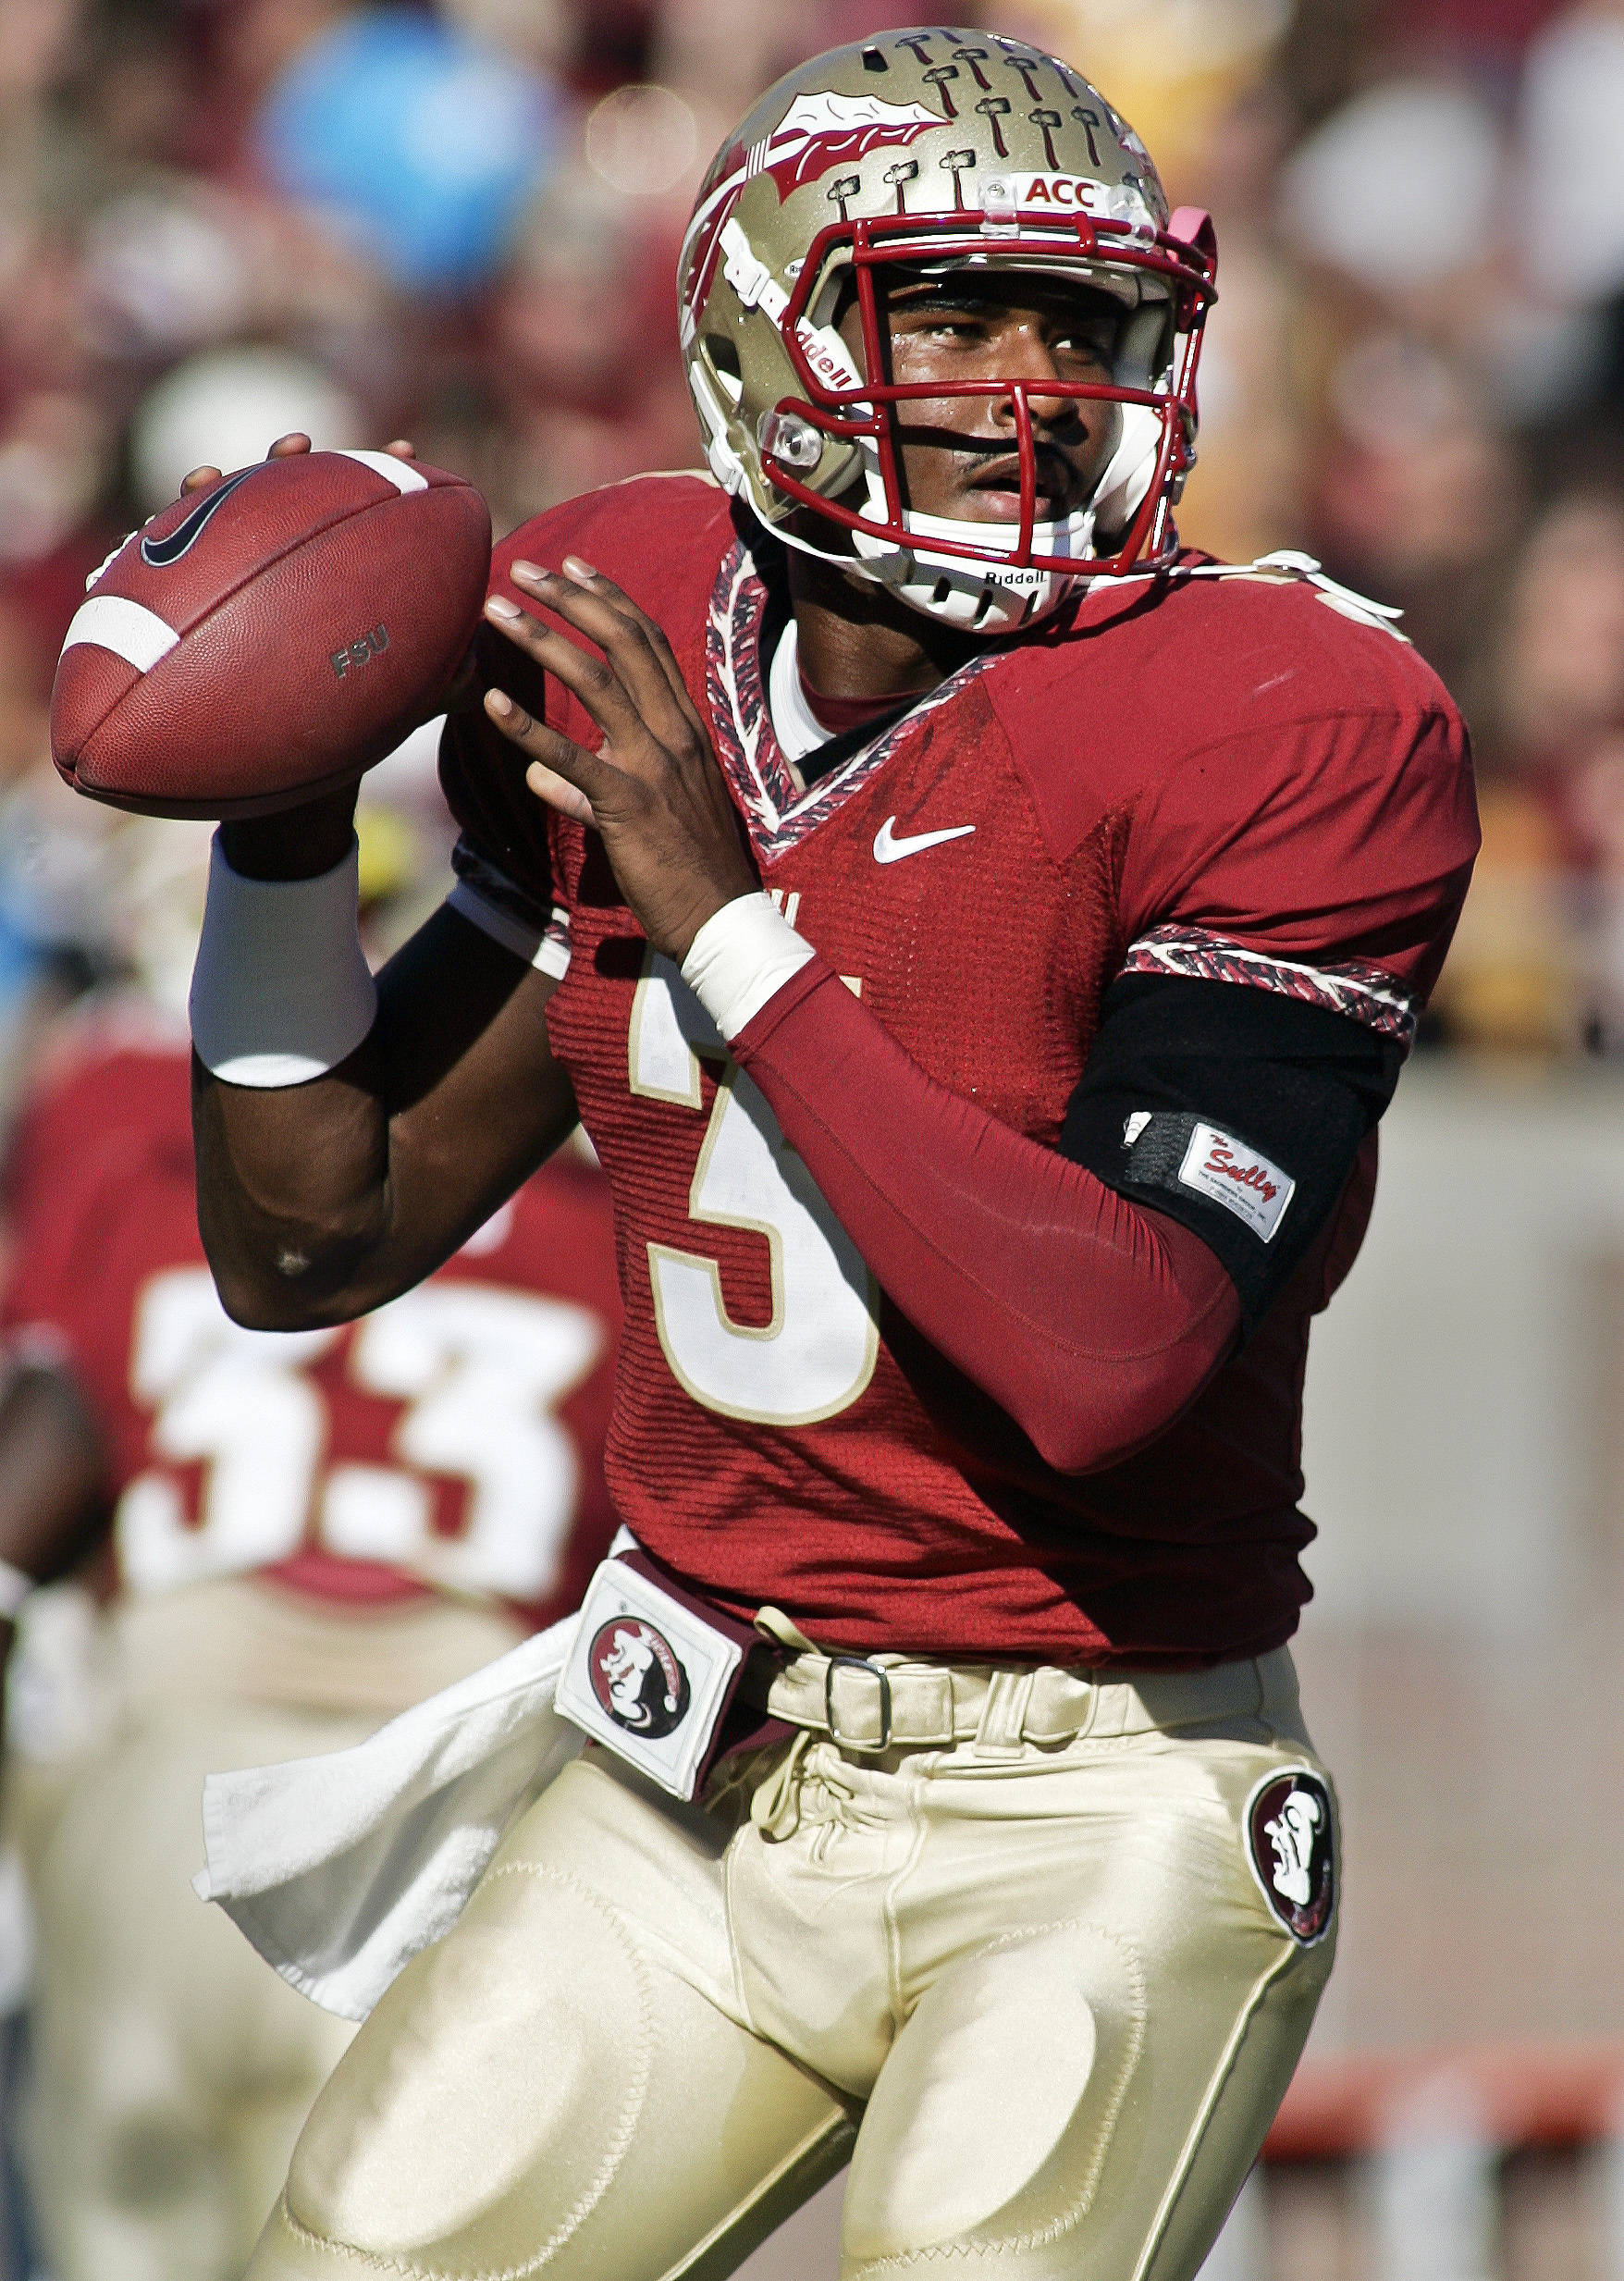 Florida State quarterback E.J. Manuel (3) warms up prior to an NCAA college football game against Miami on Saturday, Nov. 12, 2011, in Tallahassee, Fla. (AP Photo/Phil Sears)